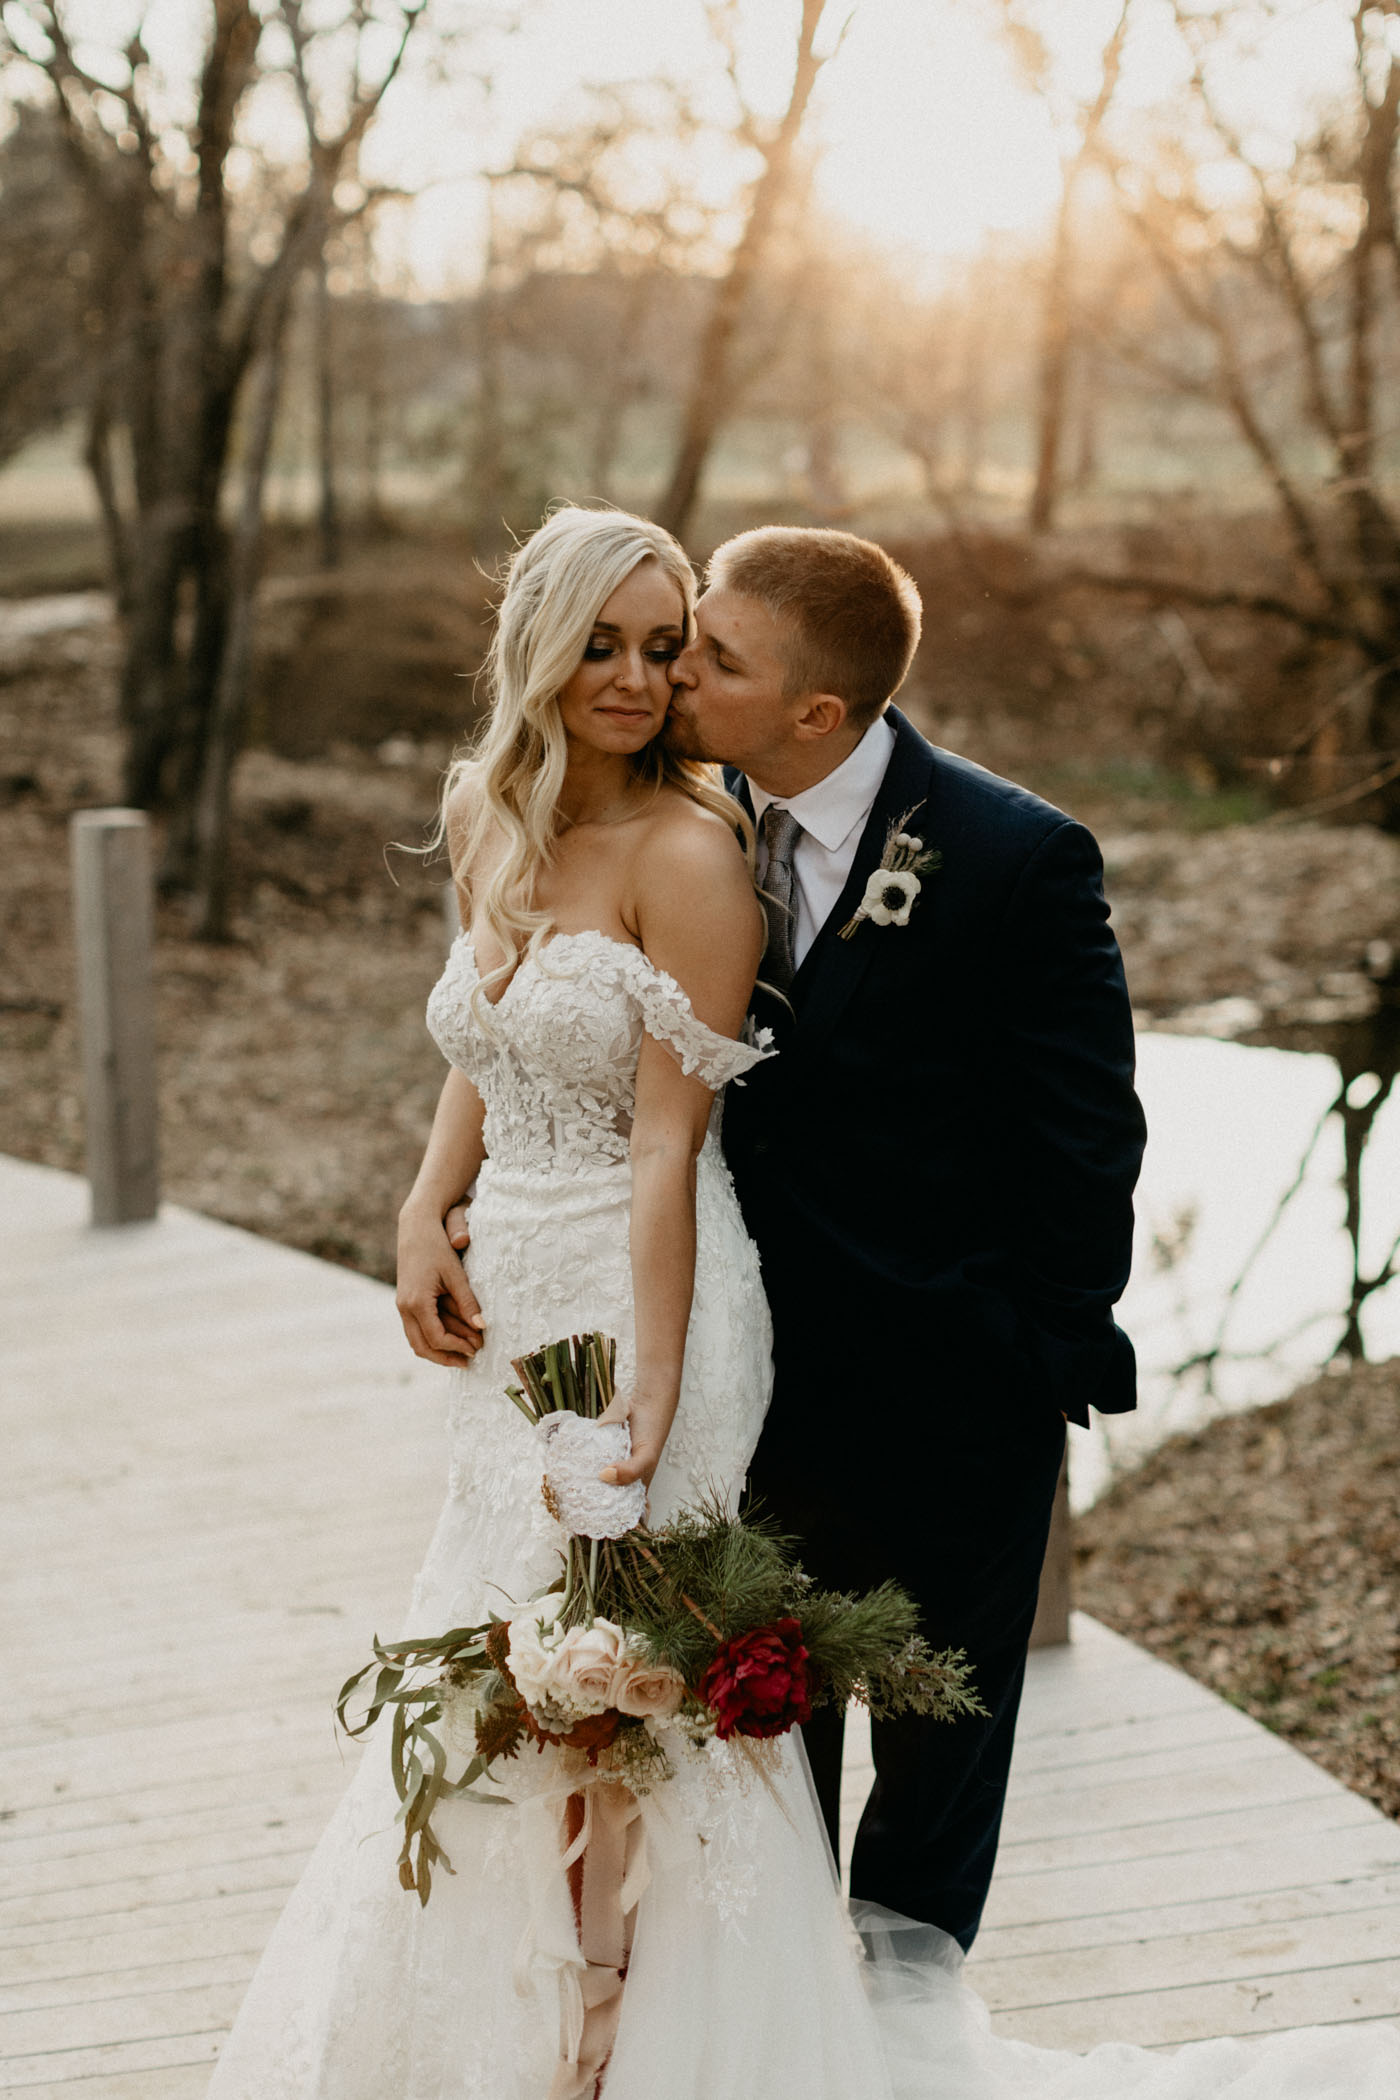 groom kissing girl on the cheek after wedding ceremony at golden hour in winter